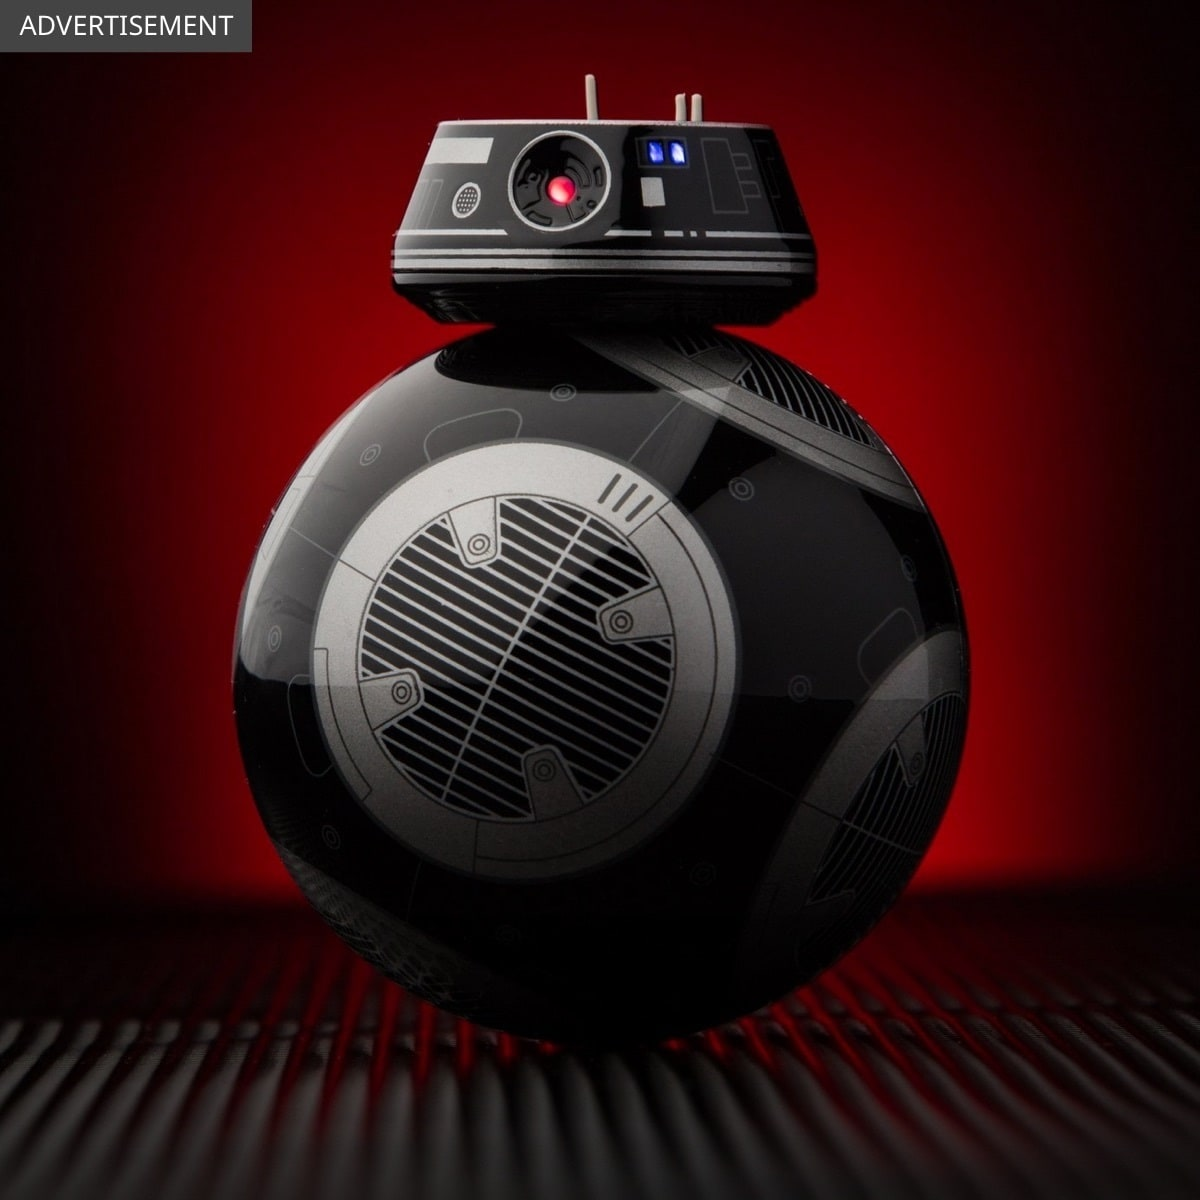 UK - Star Wars The Last Jedi - Featured Product - BB9E Sphero - Flex Grid Object - Square